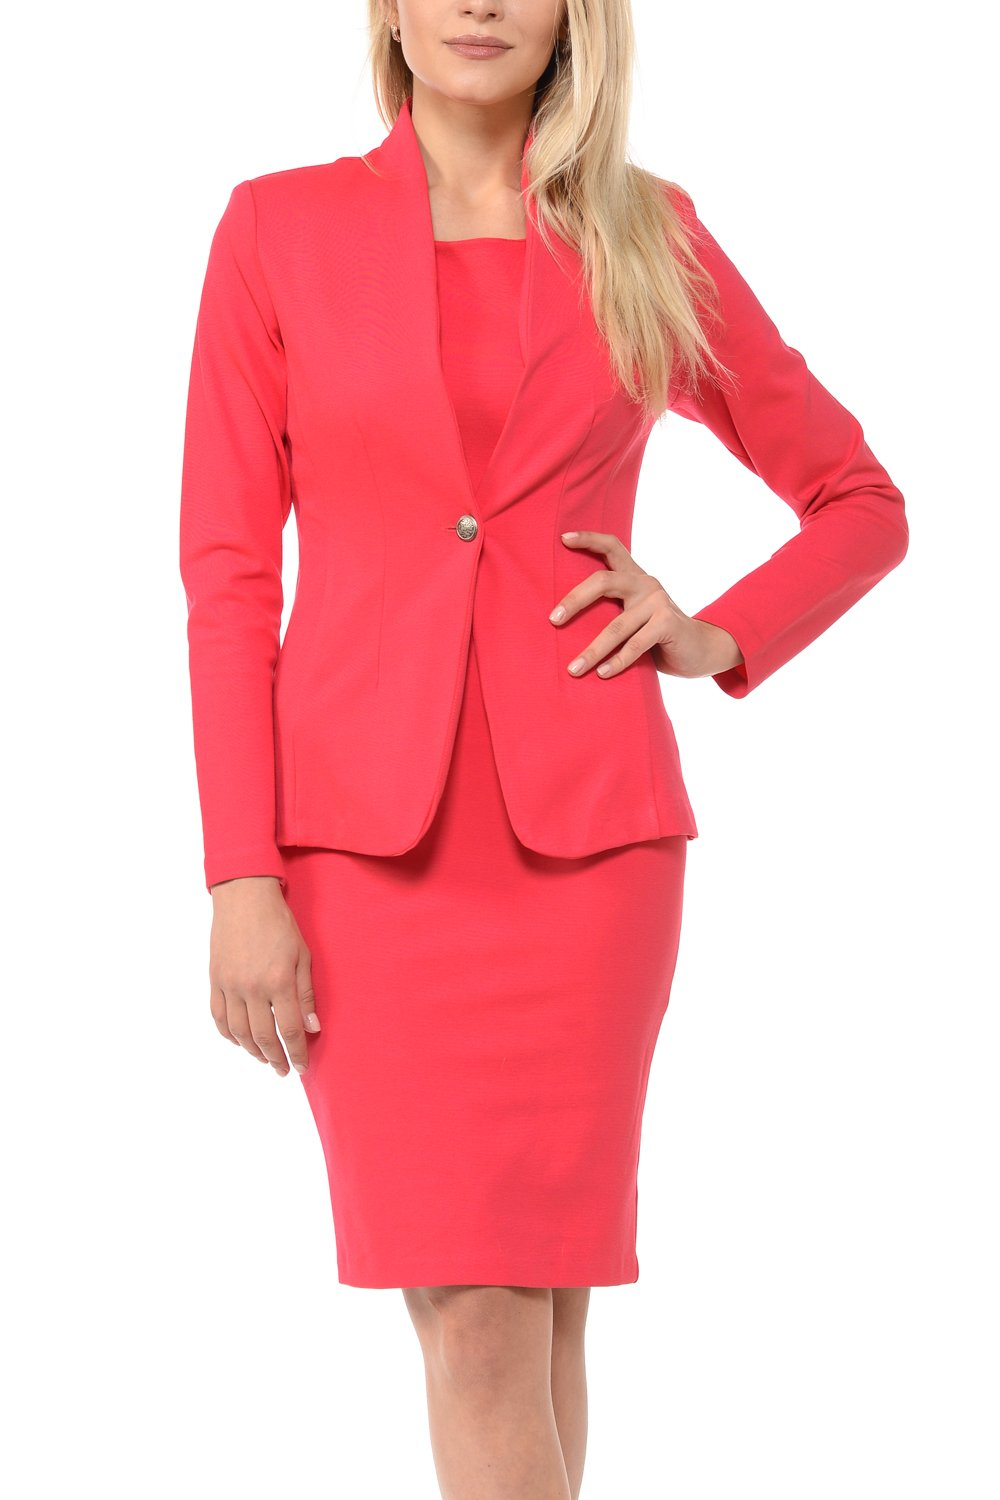 Sweethabit Womens Solid Long Sleeve Blazer and Bodycon Dress,Skirt, Pants Suit Sets